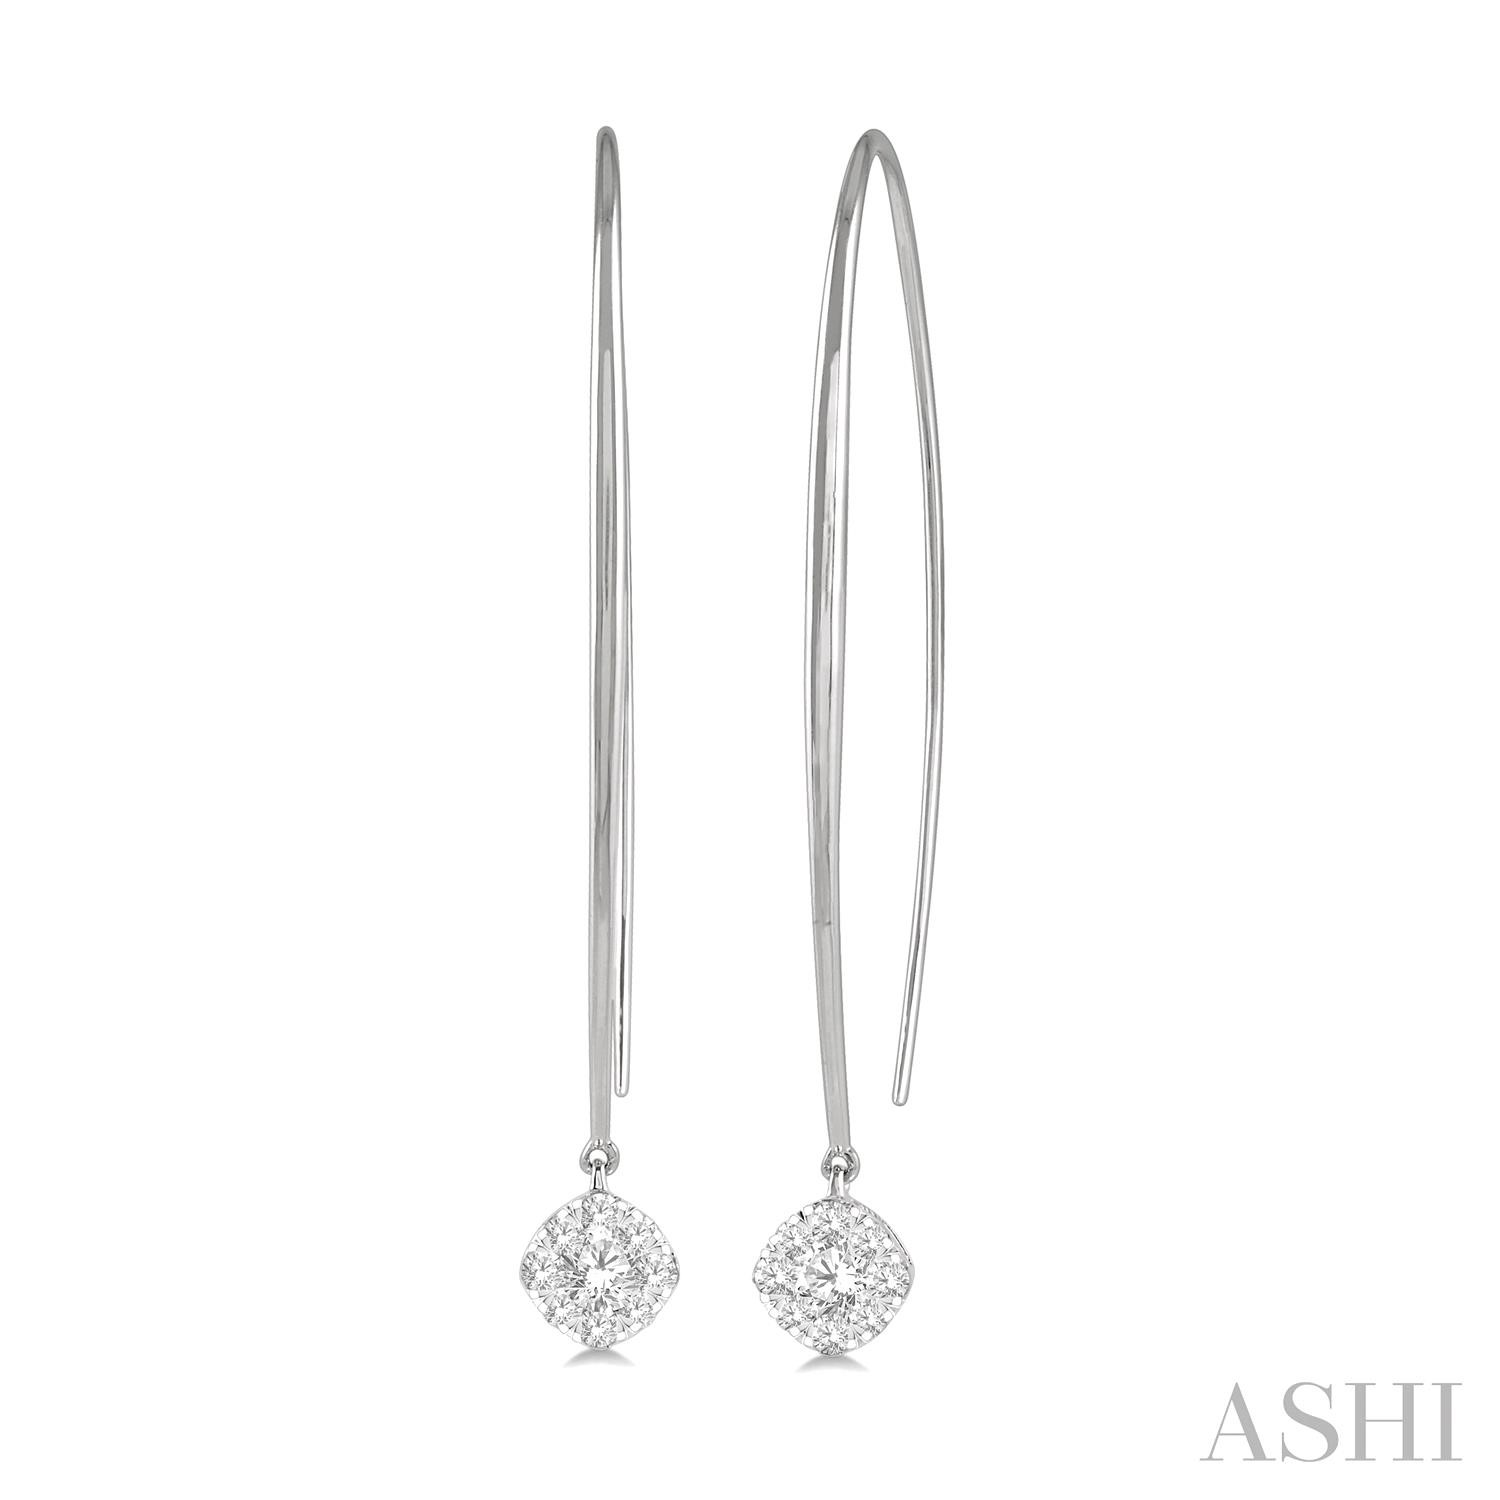 CUSHION SHAPE LOVEBRIGHT DIAMOND EARRINGS